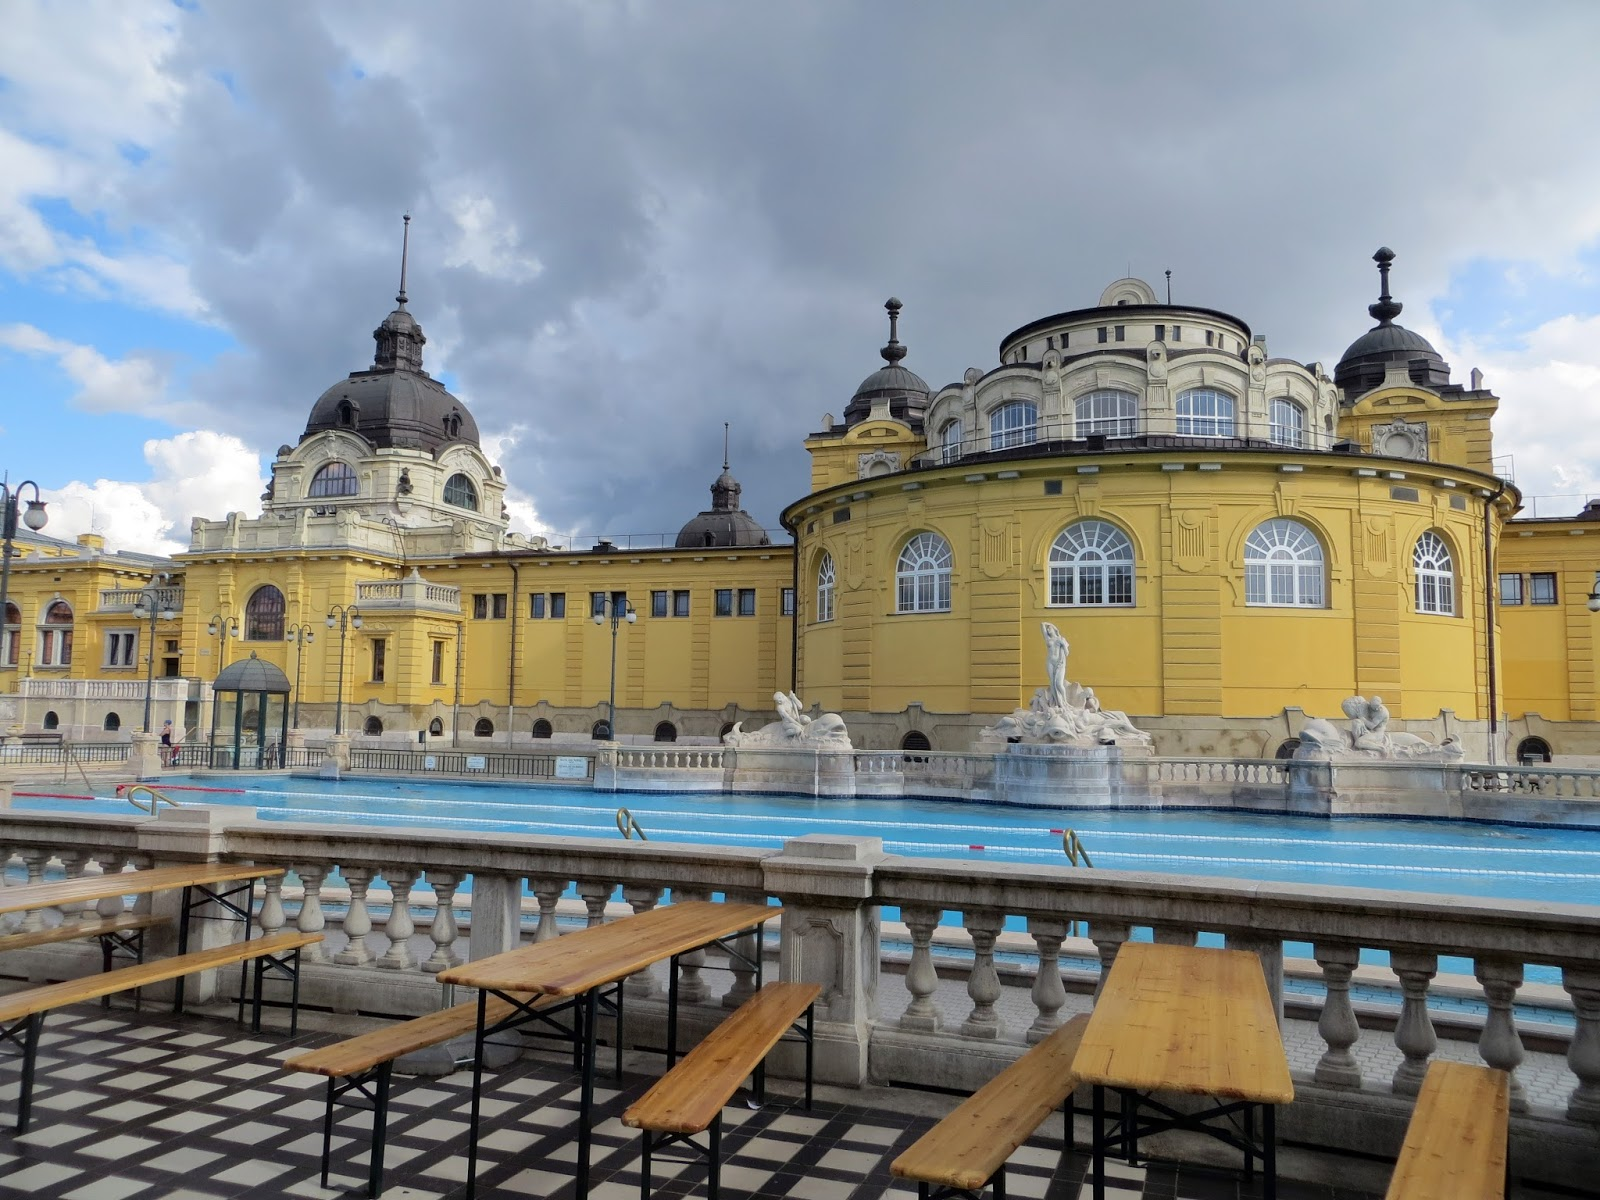 Budapest, photography, night time, architecture, travel, blog, adventure, exploration, Szechenyi Baths